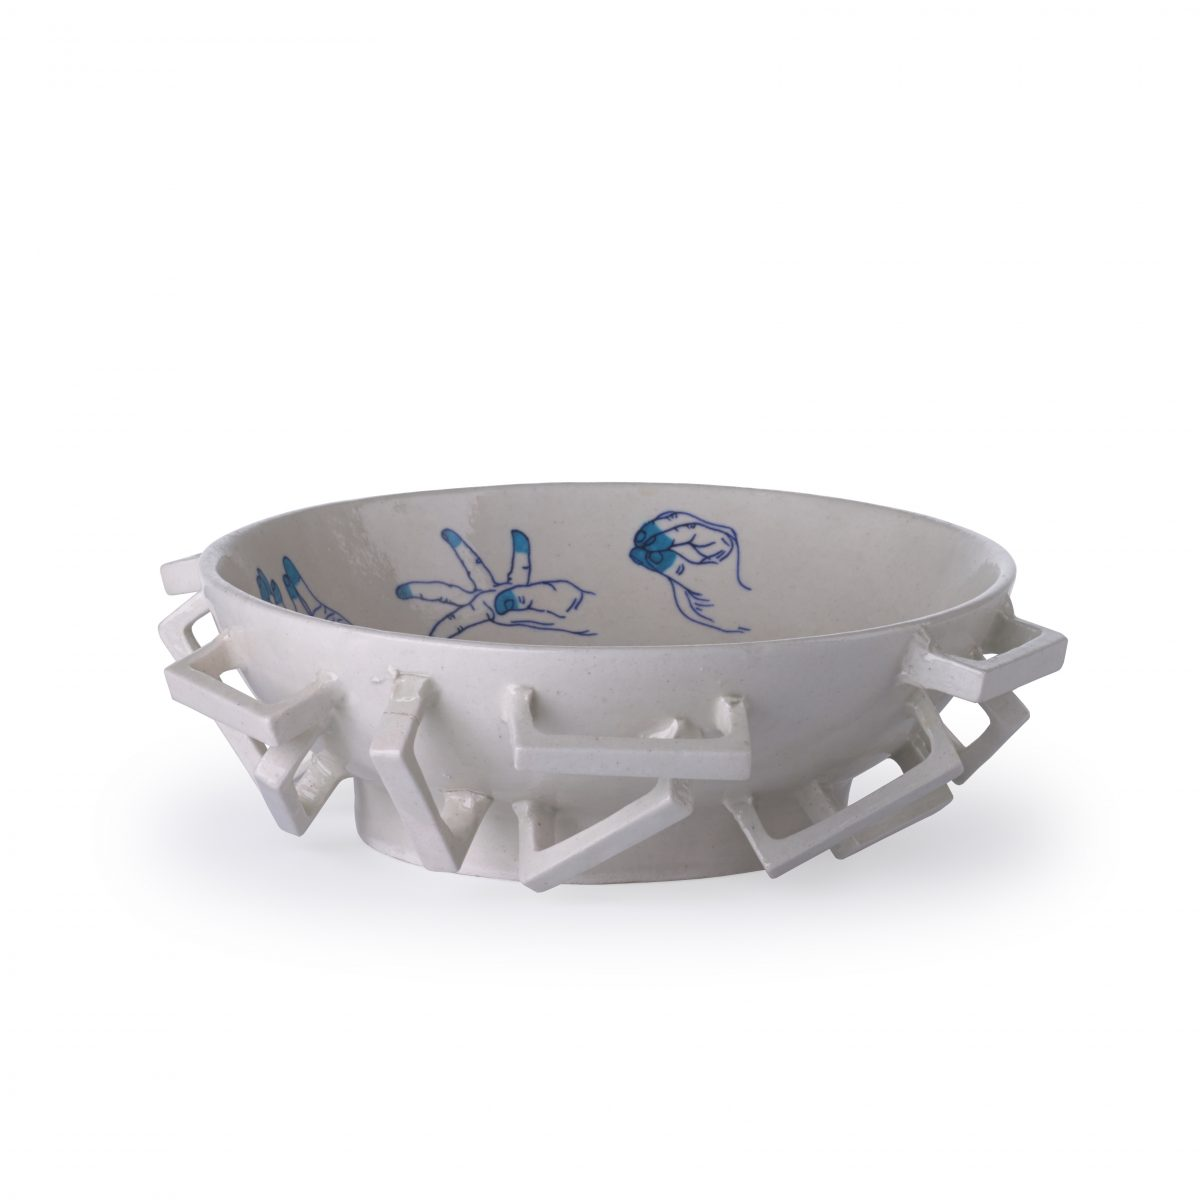 Blue Pottery Bowl L blue Studio Makkink & Bey India – Gimmii